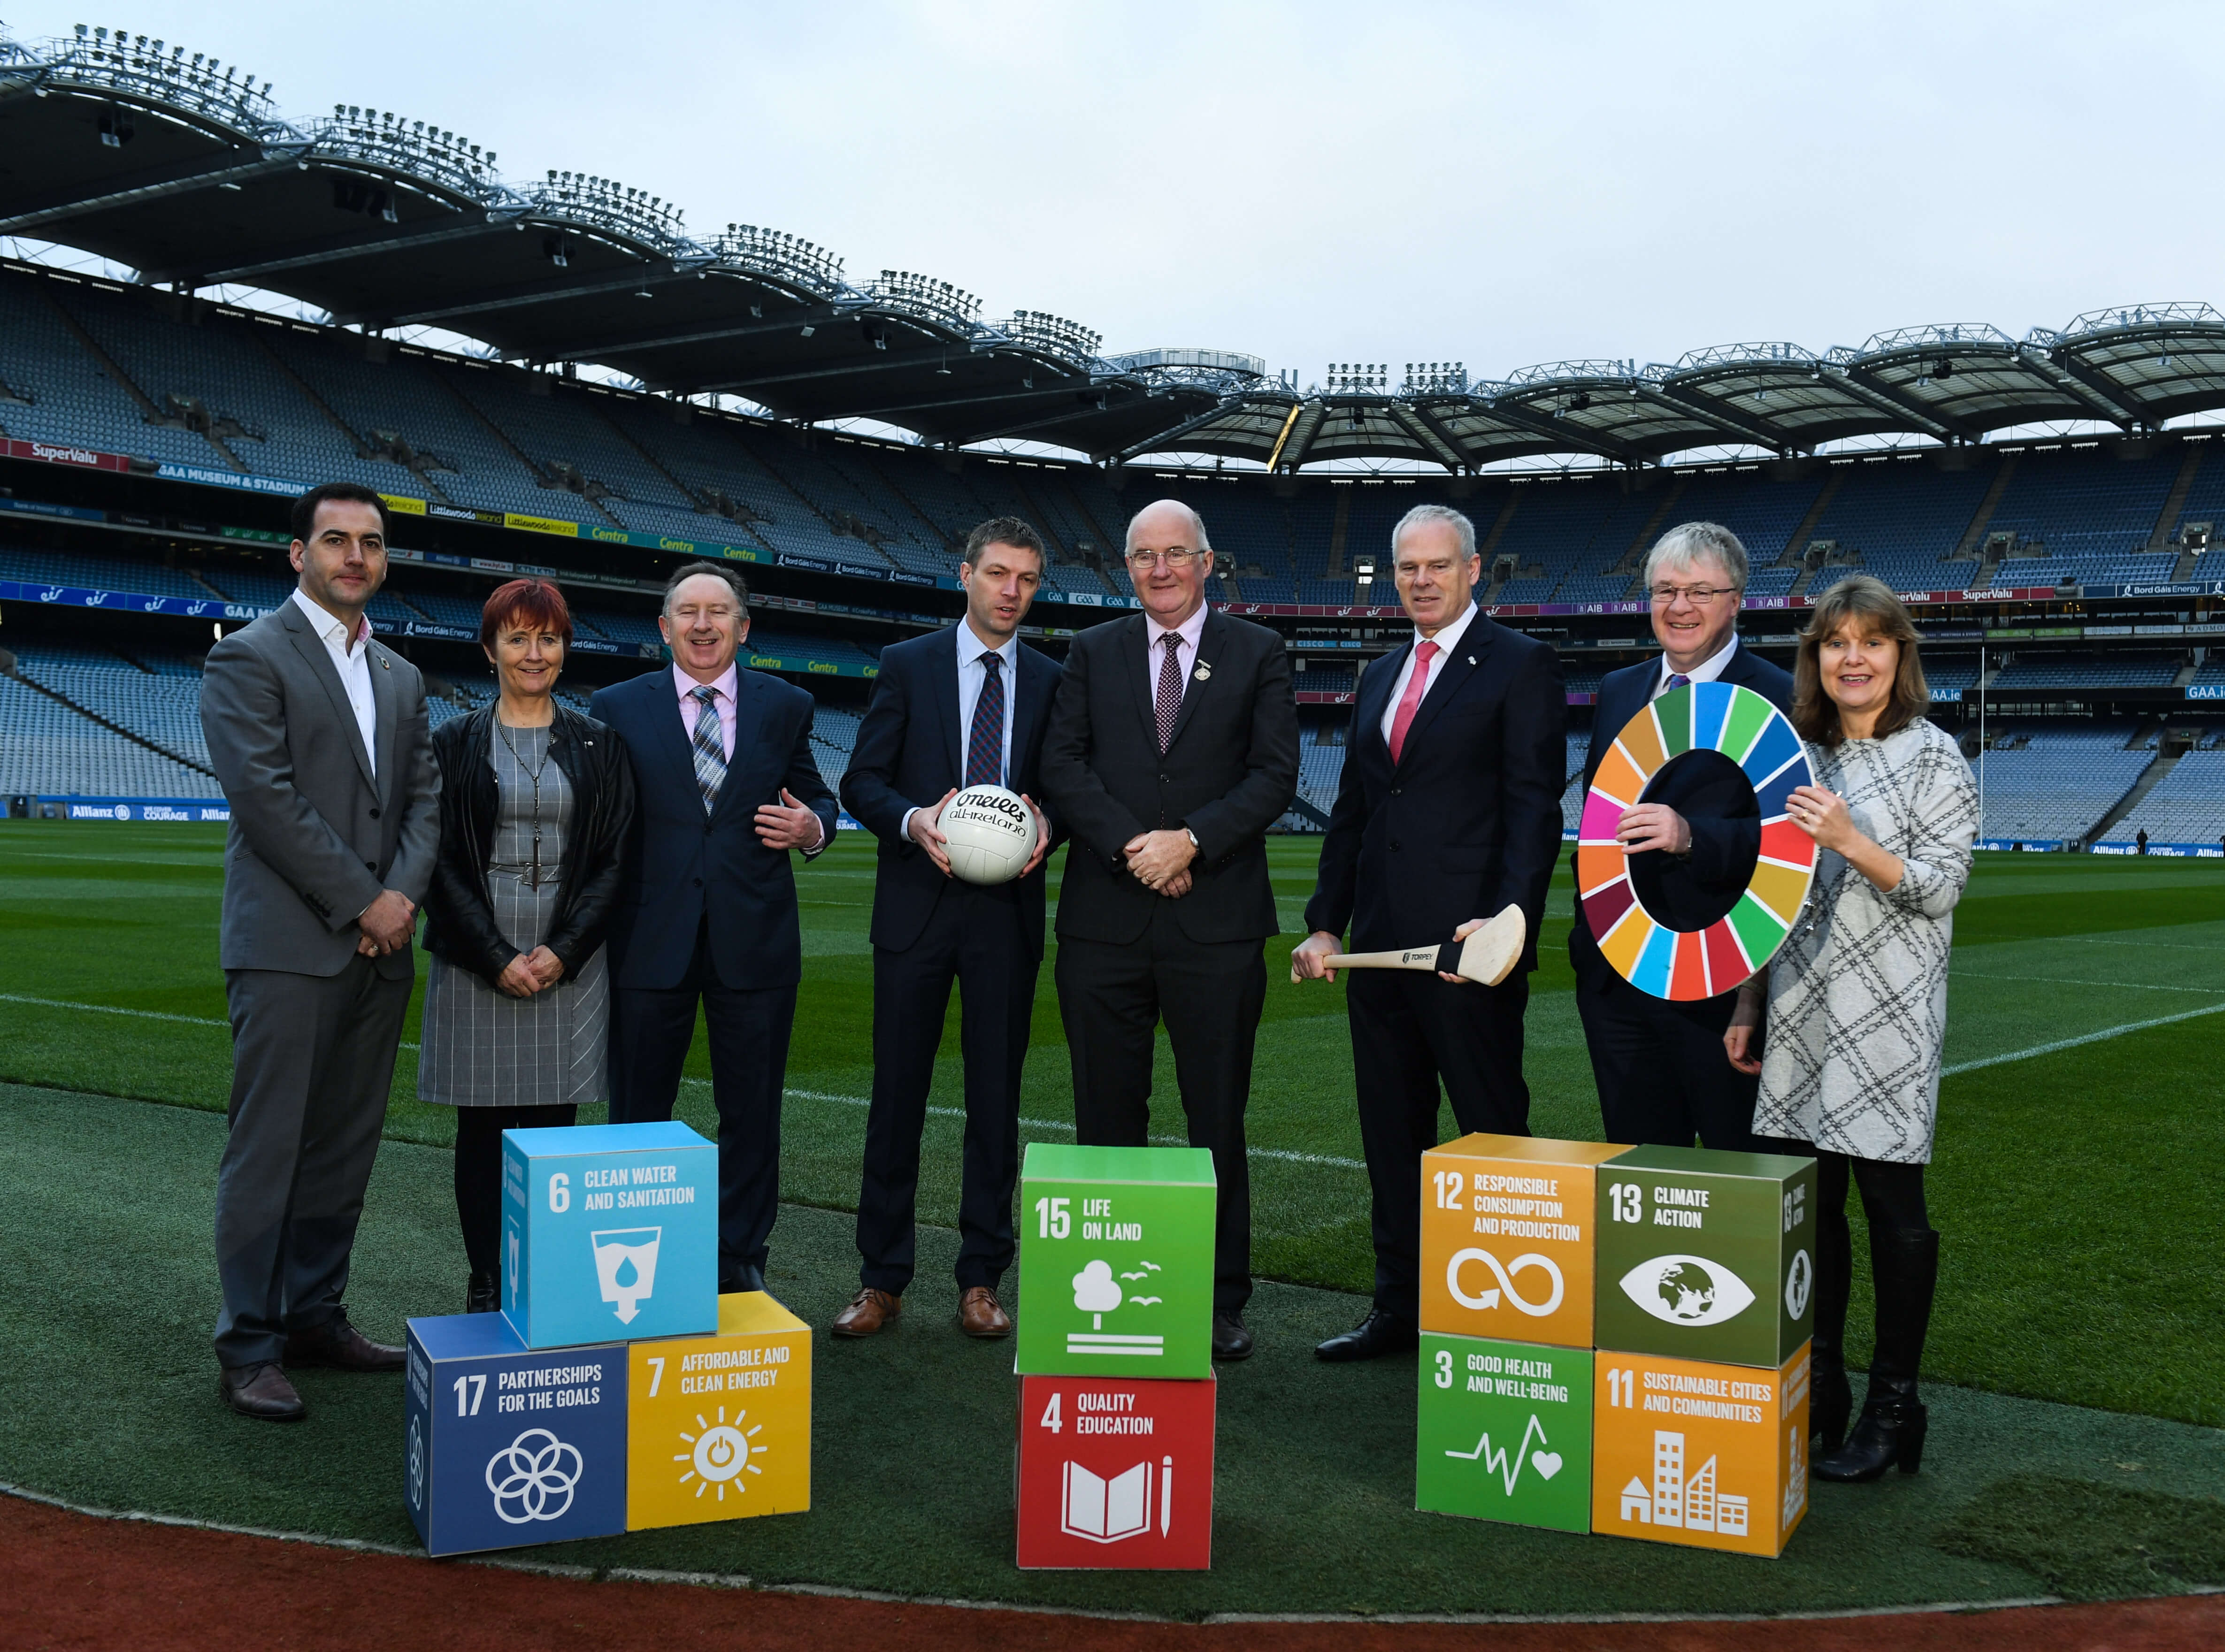 GAA and Local Authorities to Partner for Sustainable Communities